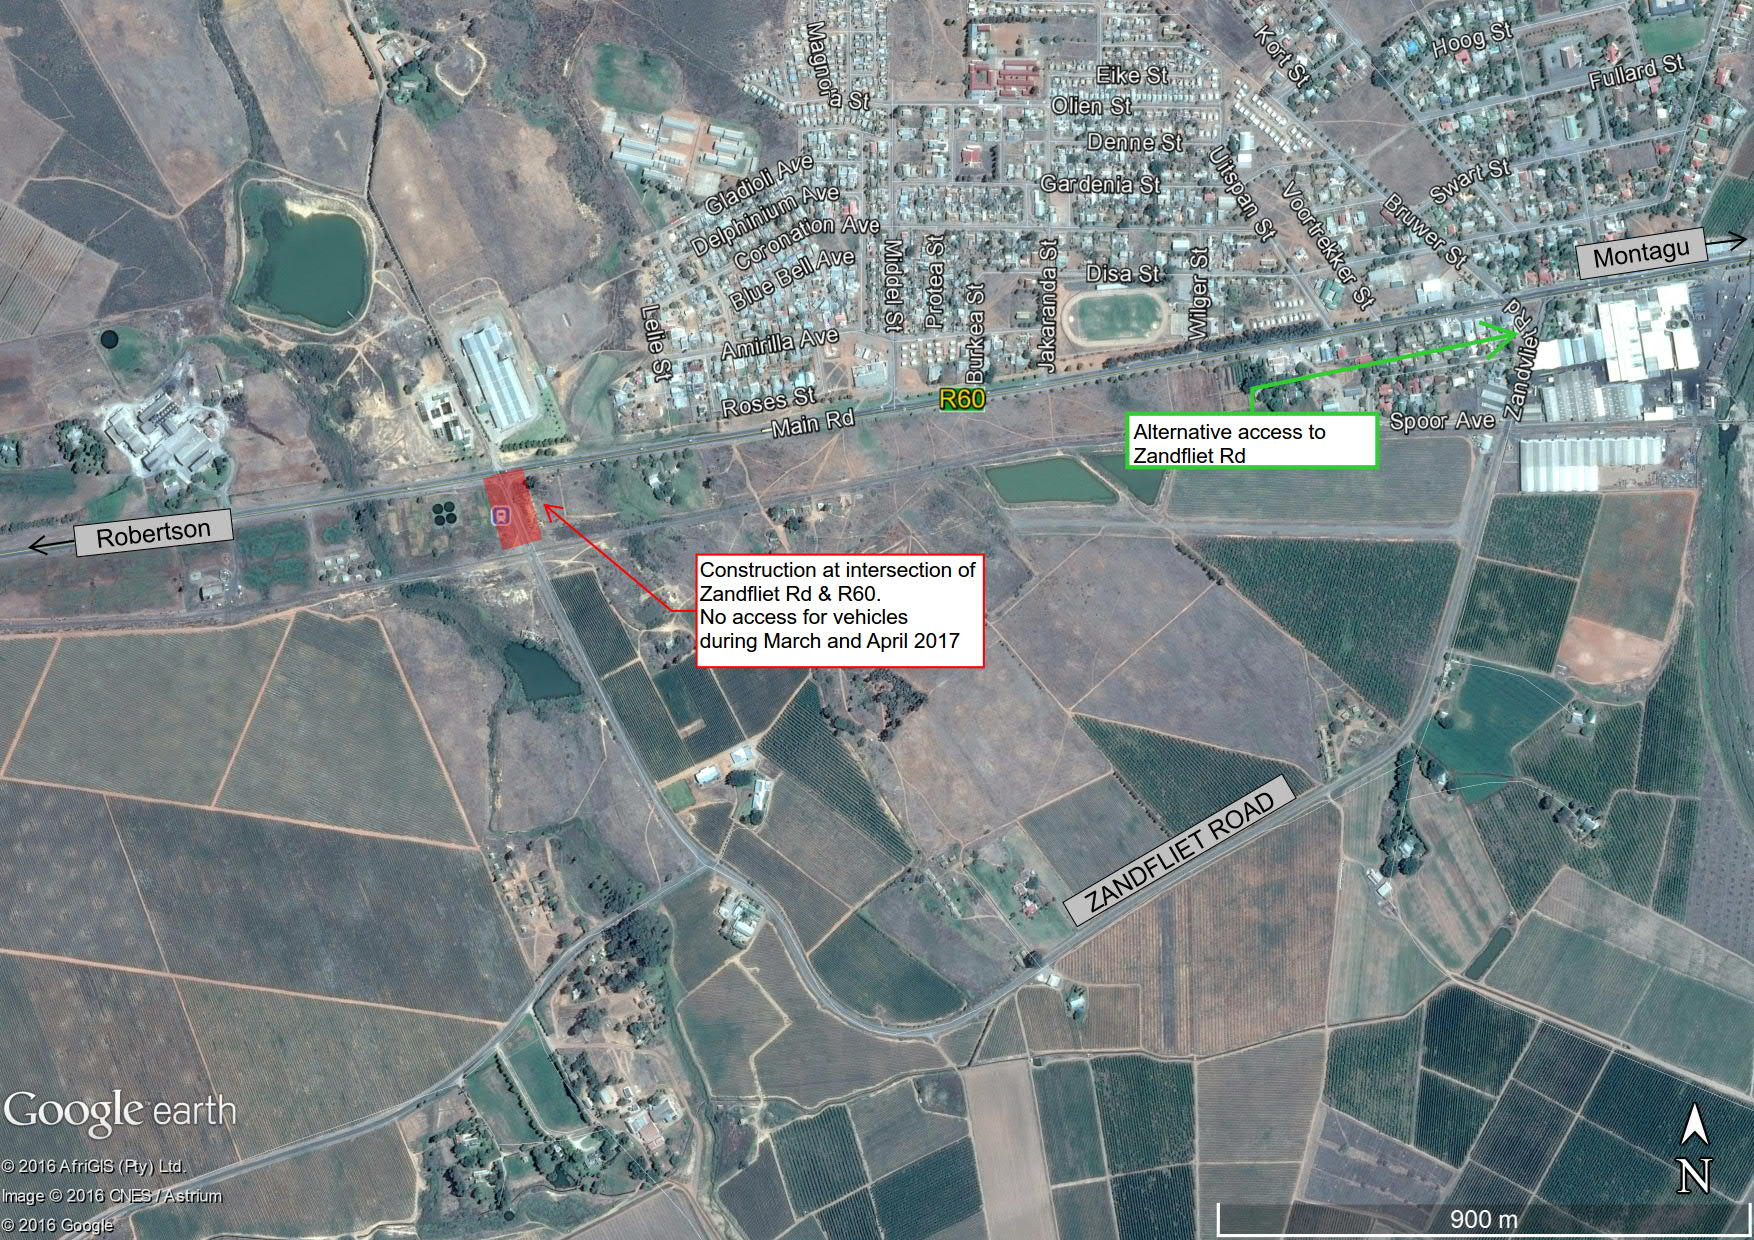 Closure of intersection of R60 and Zandfliet Road during March and April 2017